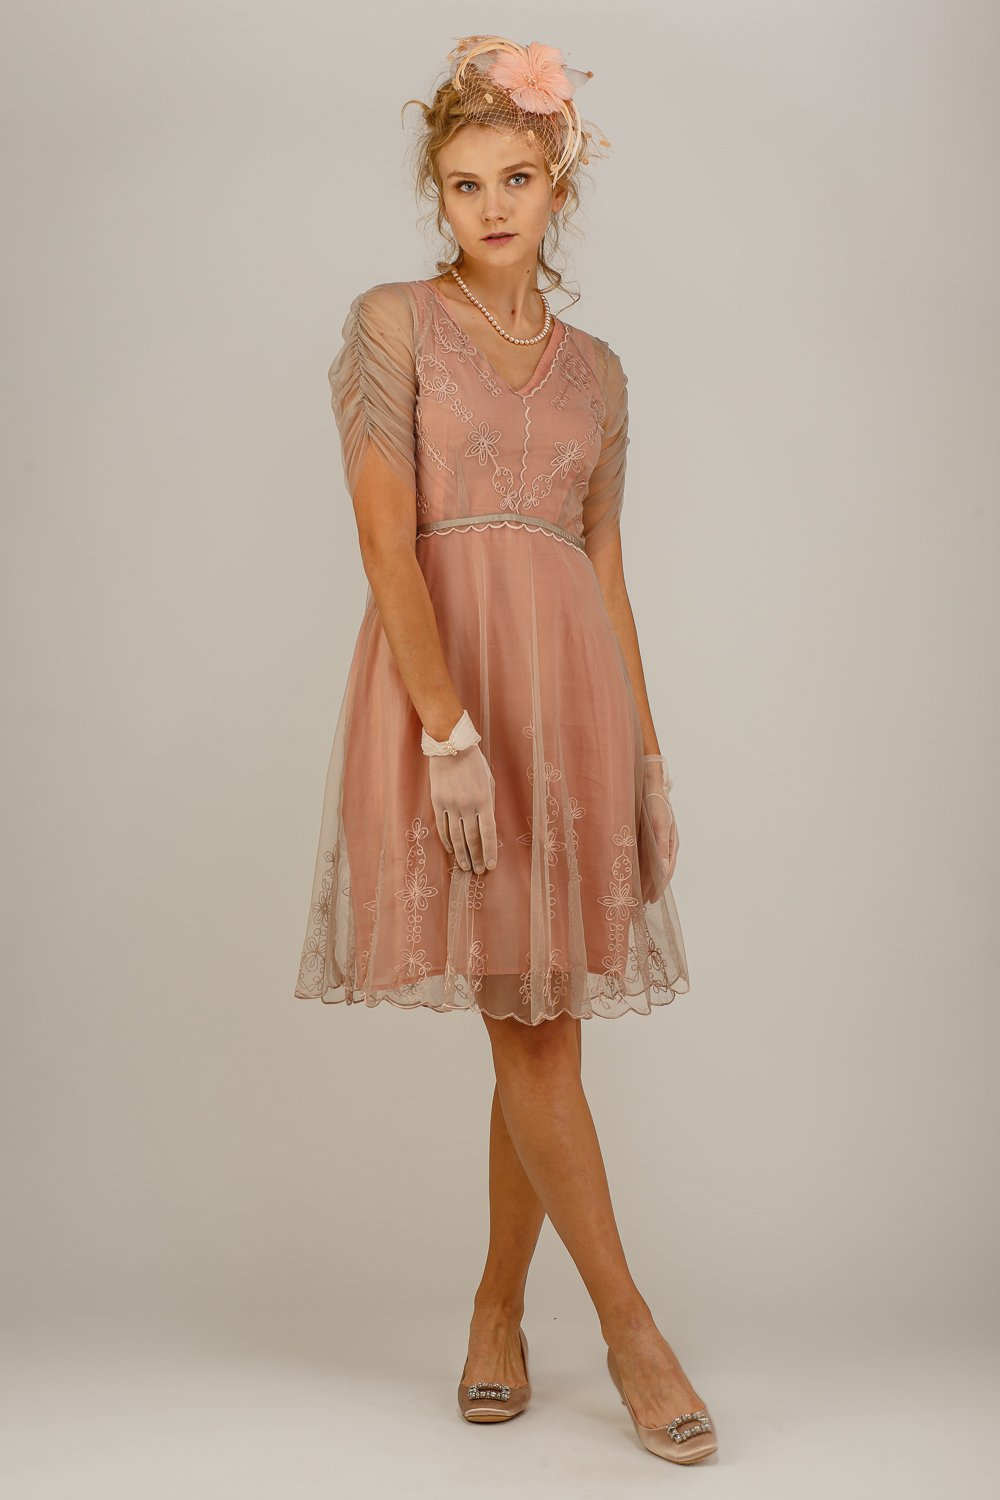 Nataya 1920's Vintage Inspired Mauve Dress-AL251 - Blanche's Place